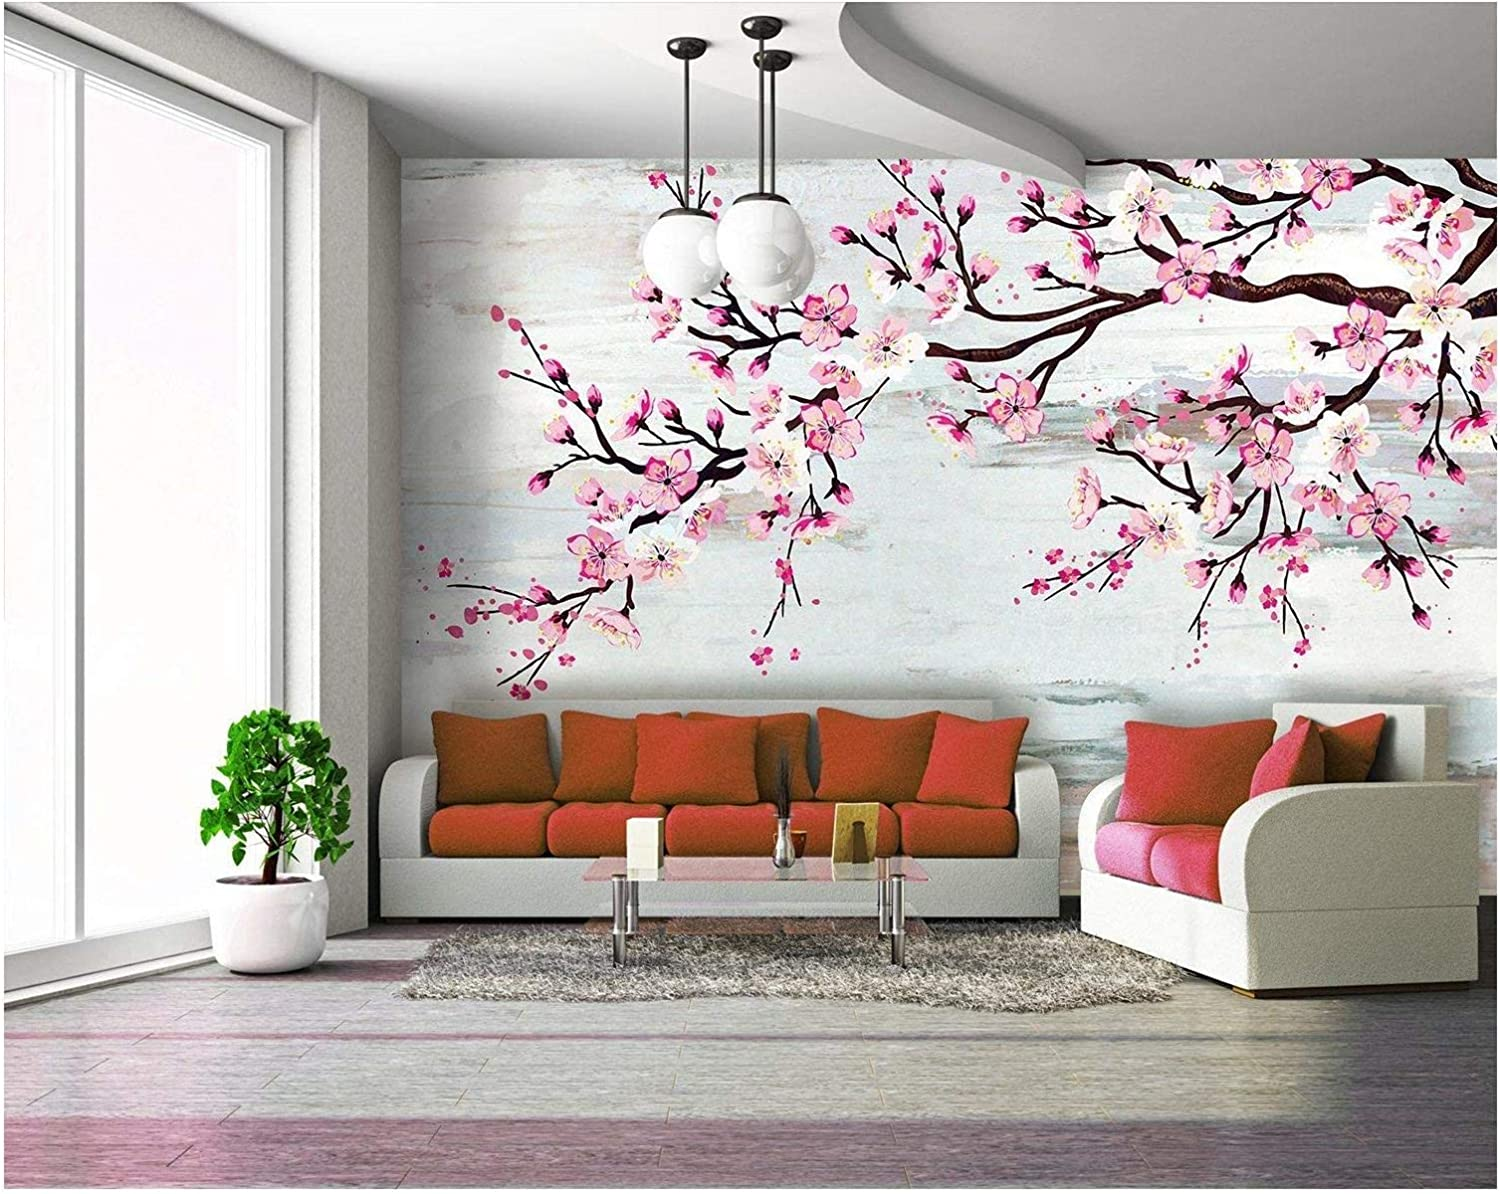 Large Wall Mural Watercolor Style Ink Painting Pink Cherry Blossom